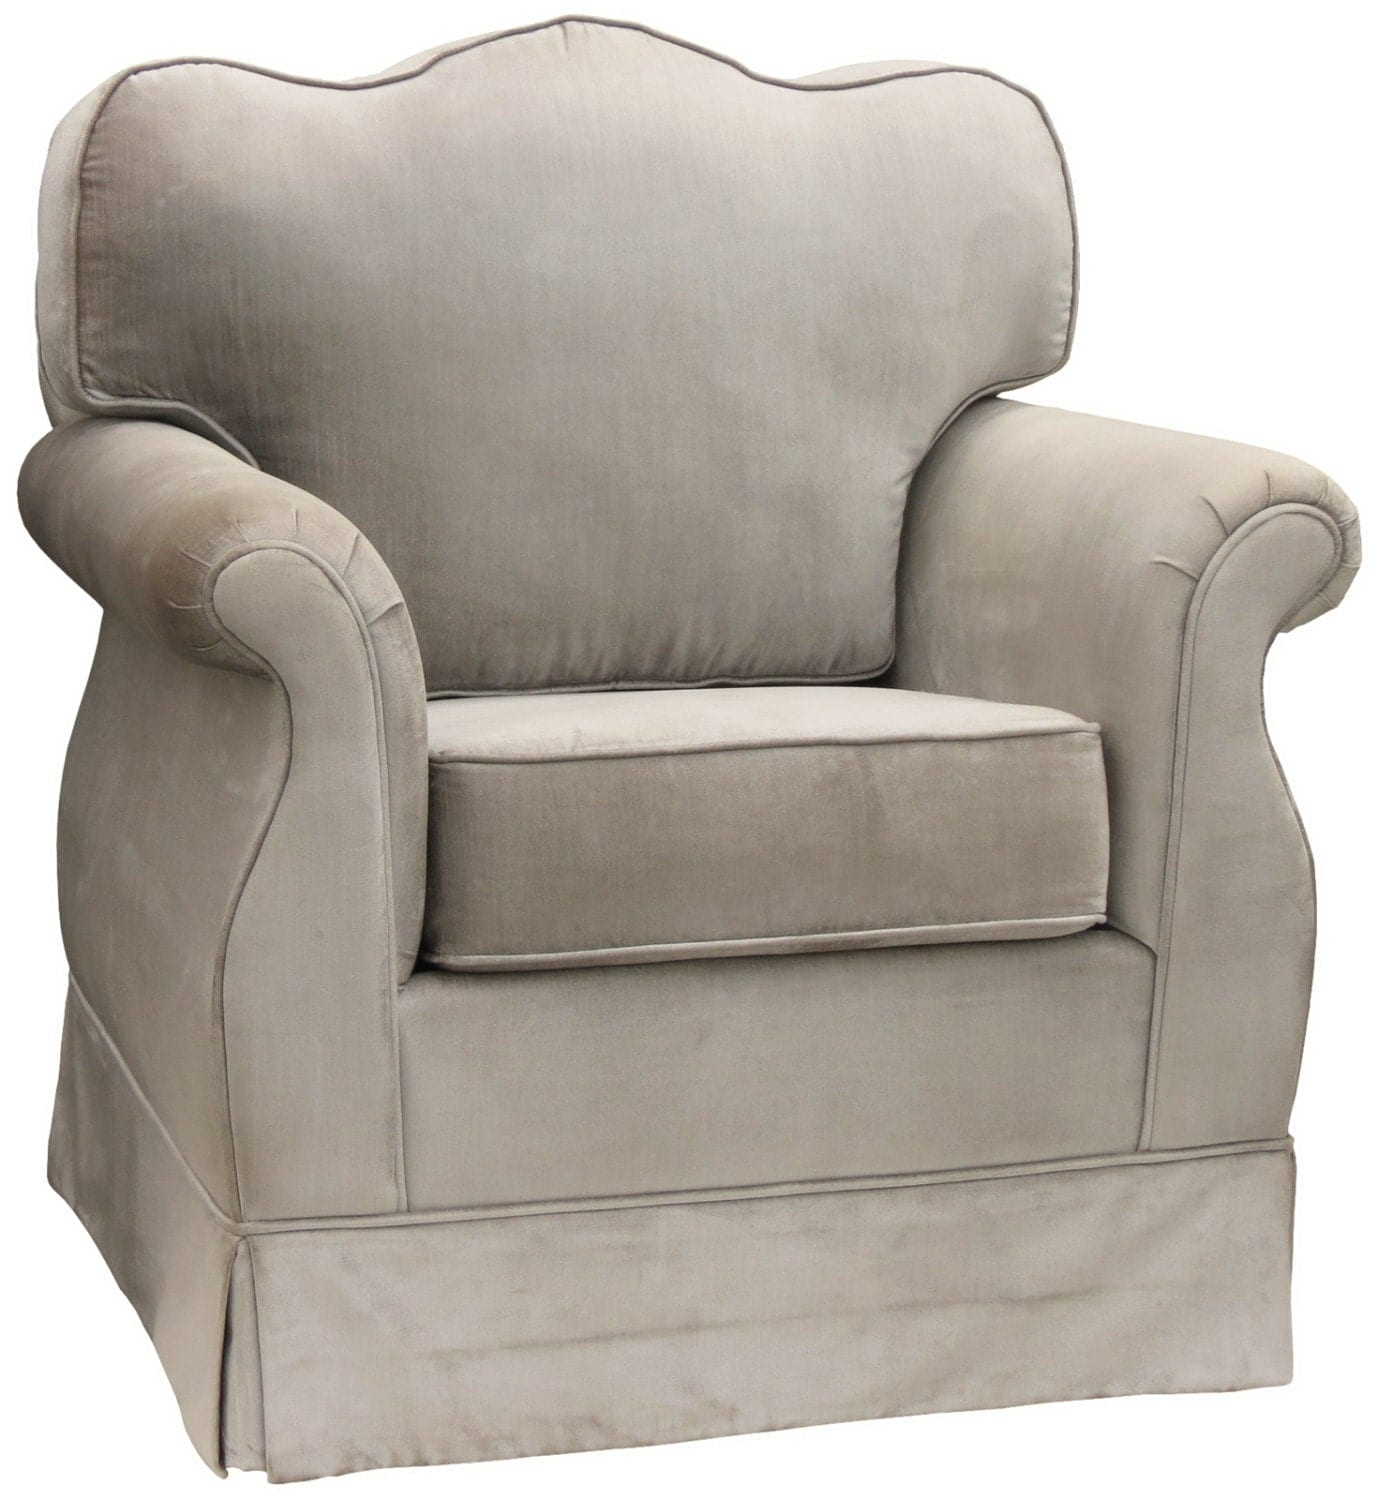 Items Similar To Cute Angel Song Aspen Silver Upholstered